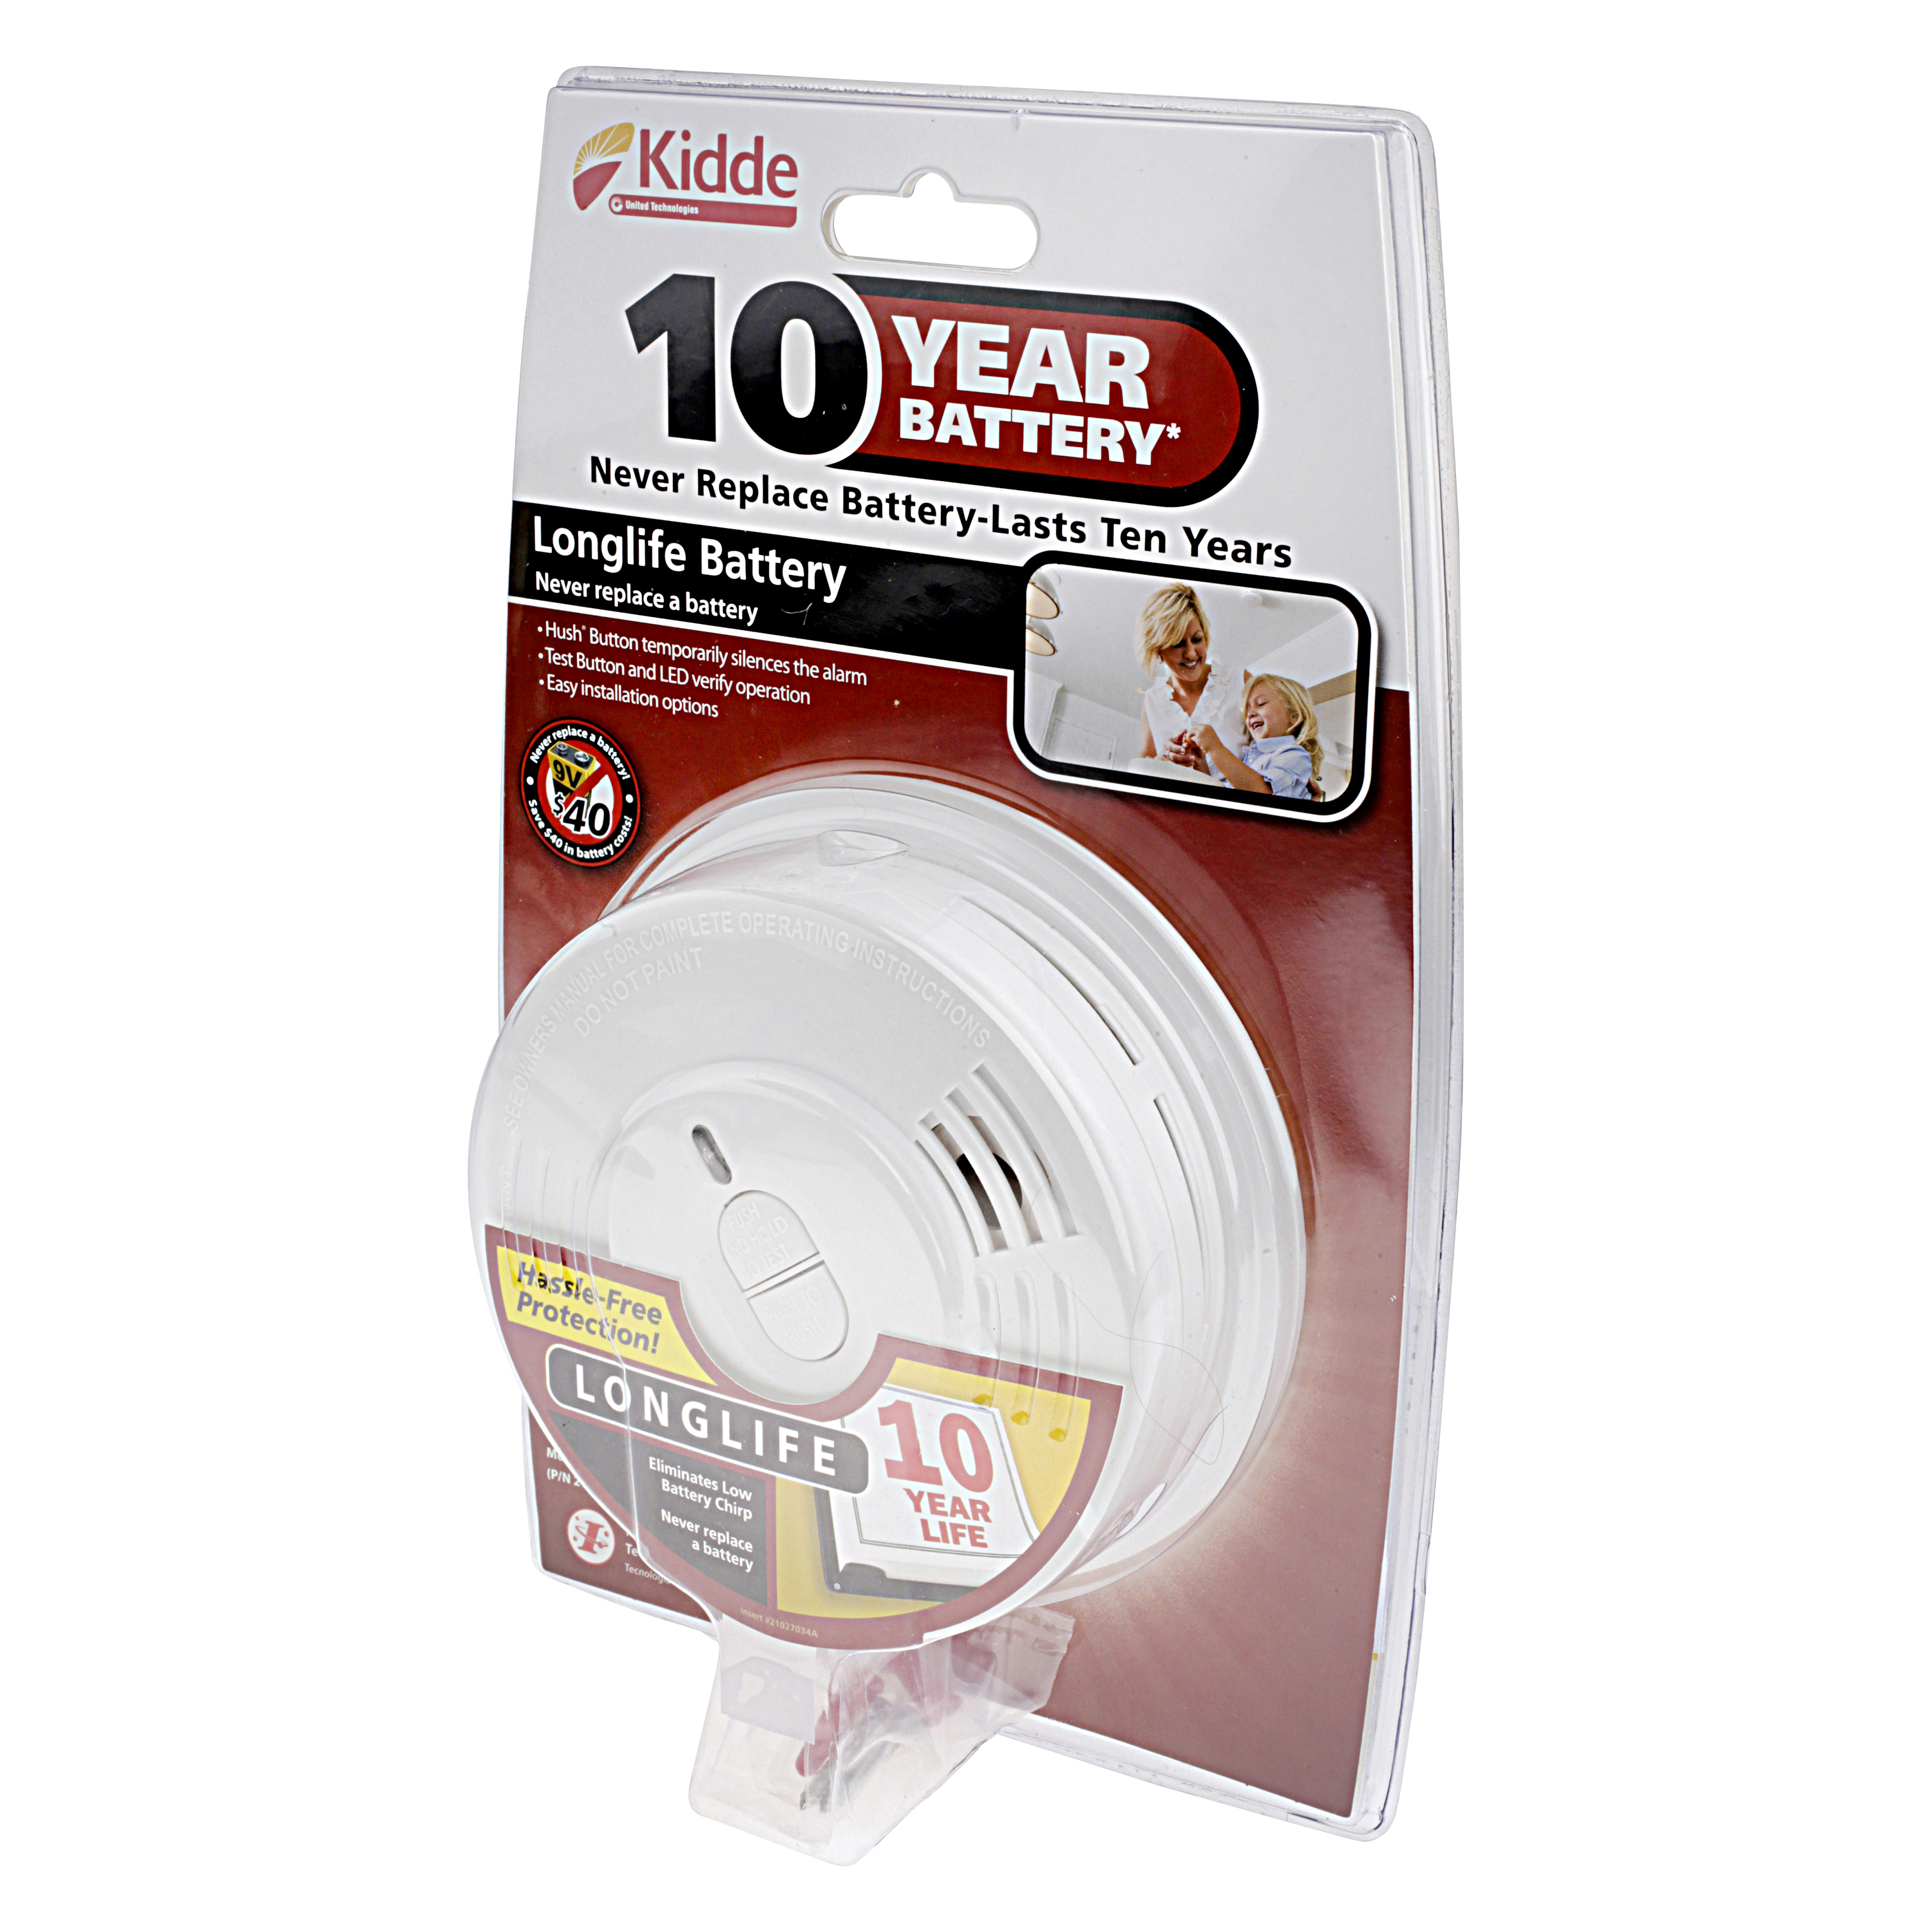 Kidde Sealed Lithium Battery Power Smoke Alarm I9010